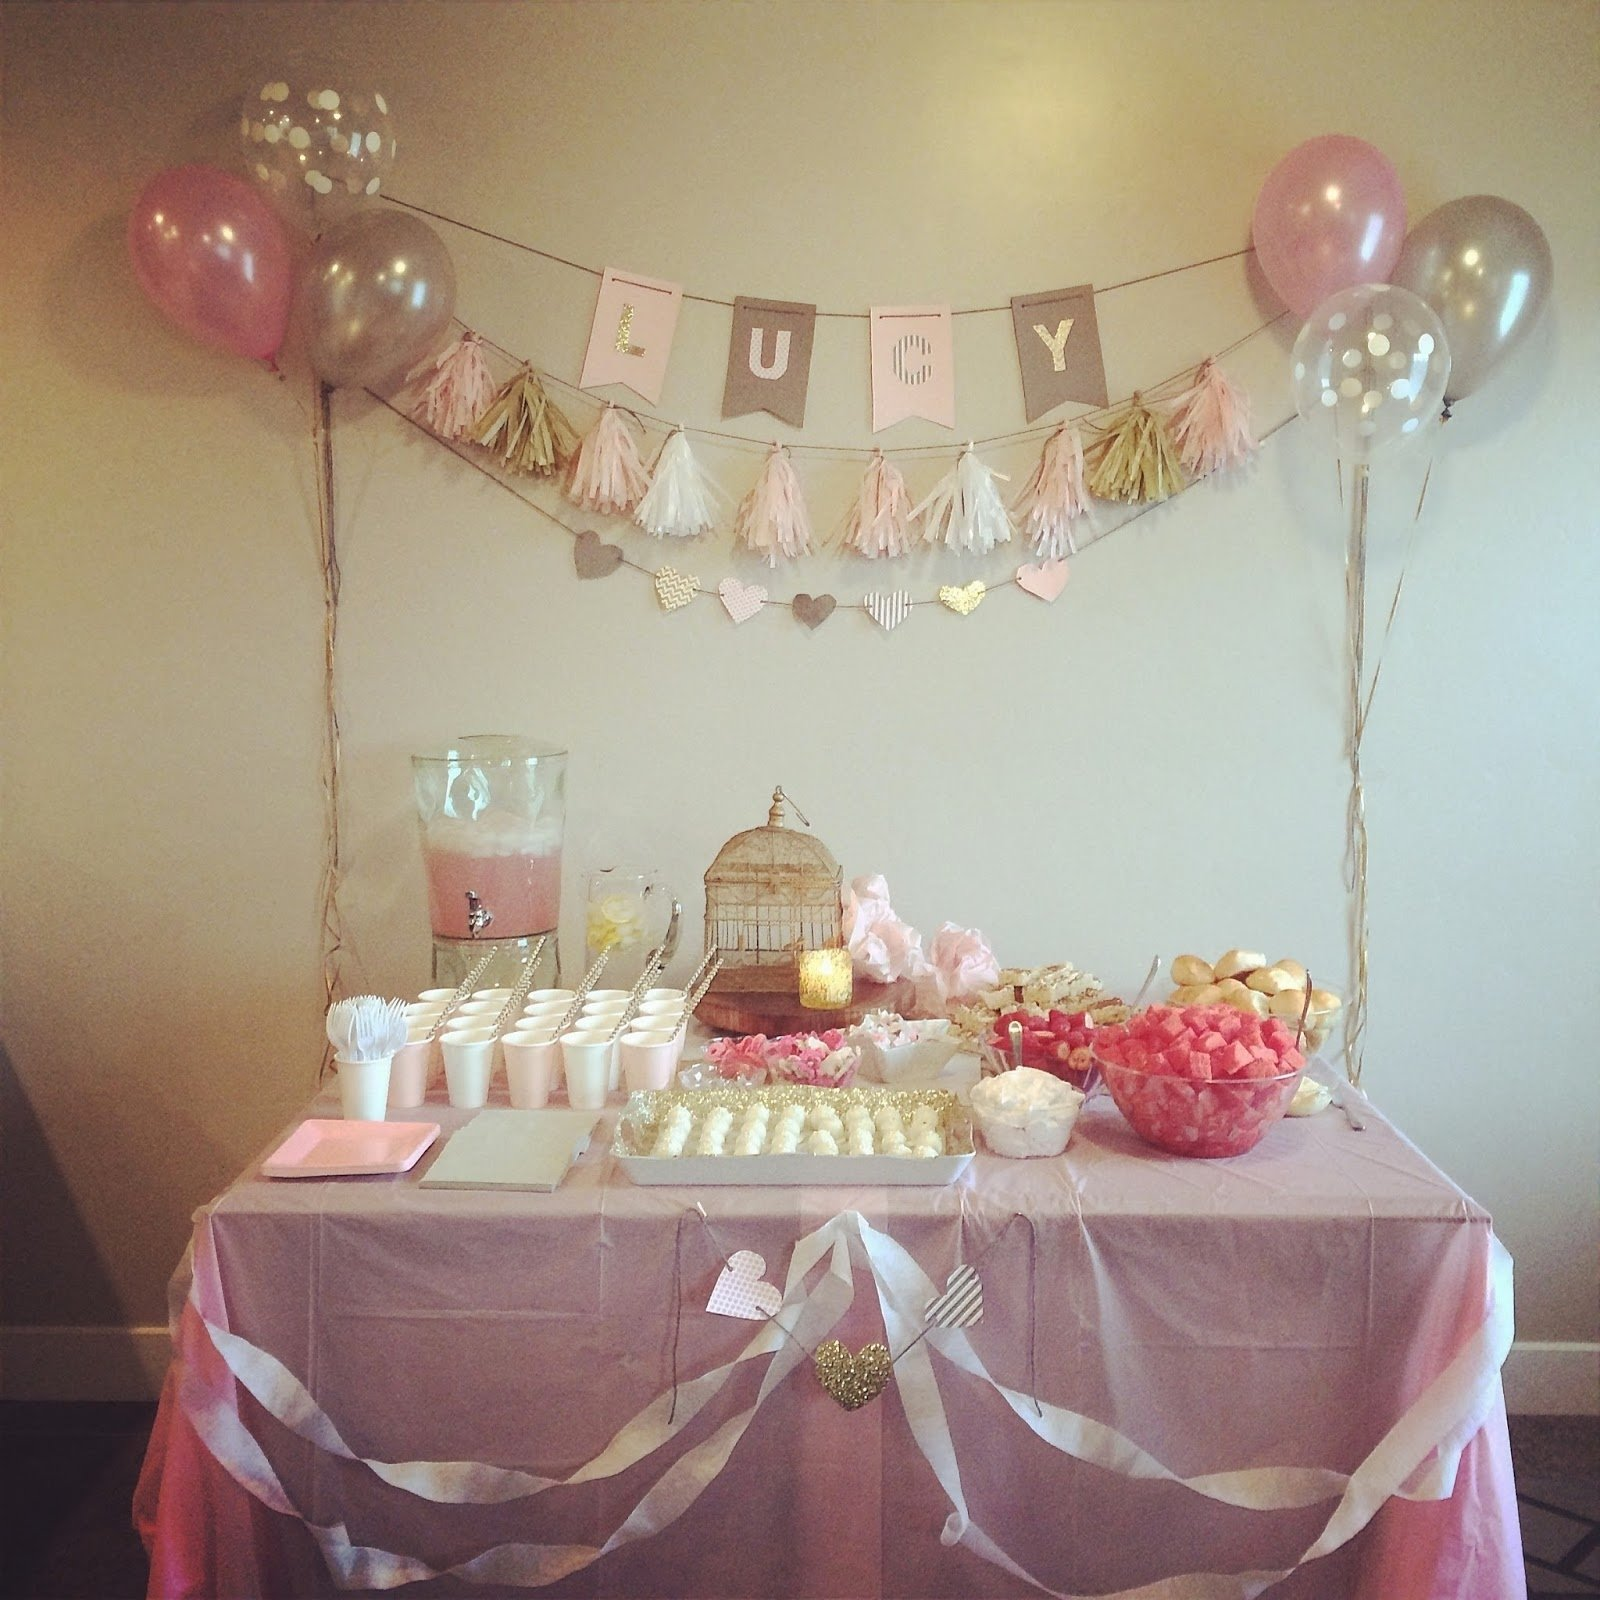 10 Lovely Baby Shower On A Budget Ideas baby shower on budget how to throw a baby shower for under 80 2021